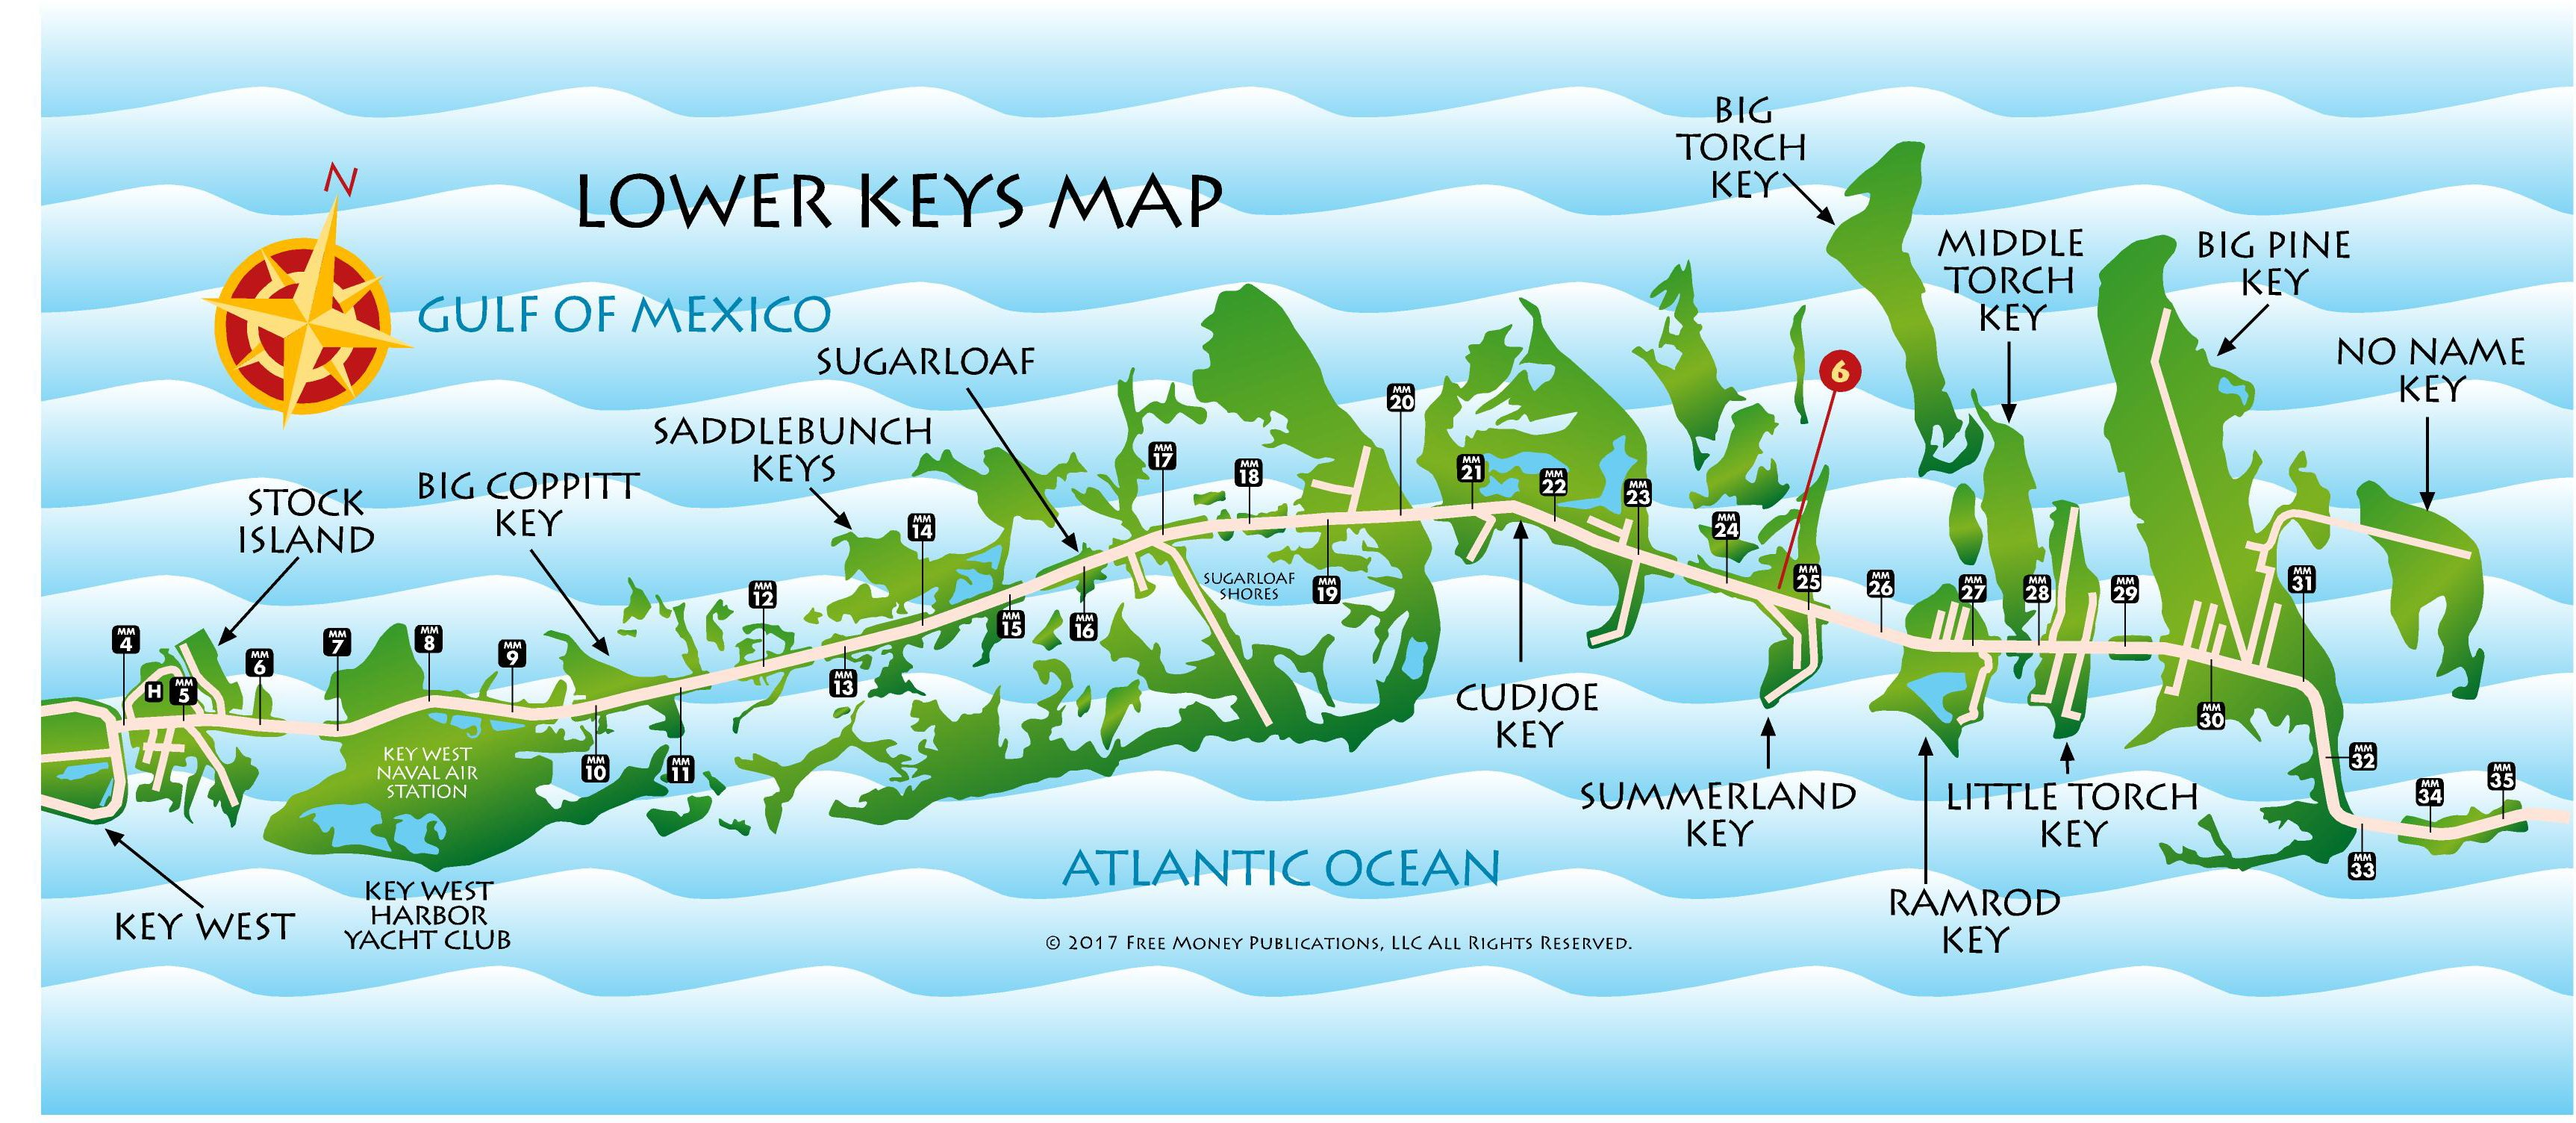 picture regarding Printable Map of Florida Keys identify Maps, Magic formula West / Florida Keys Top secret West / Florida Keys